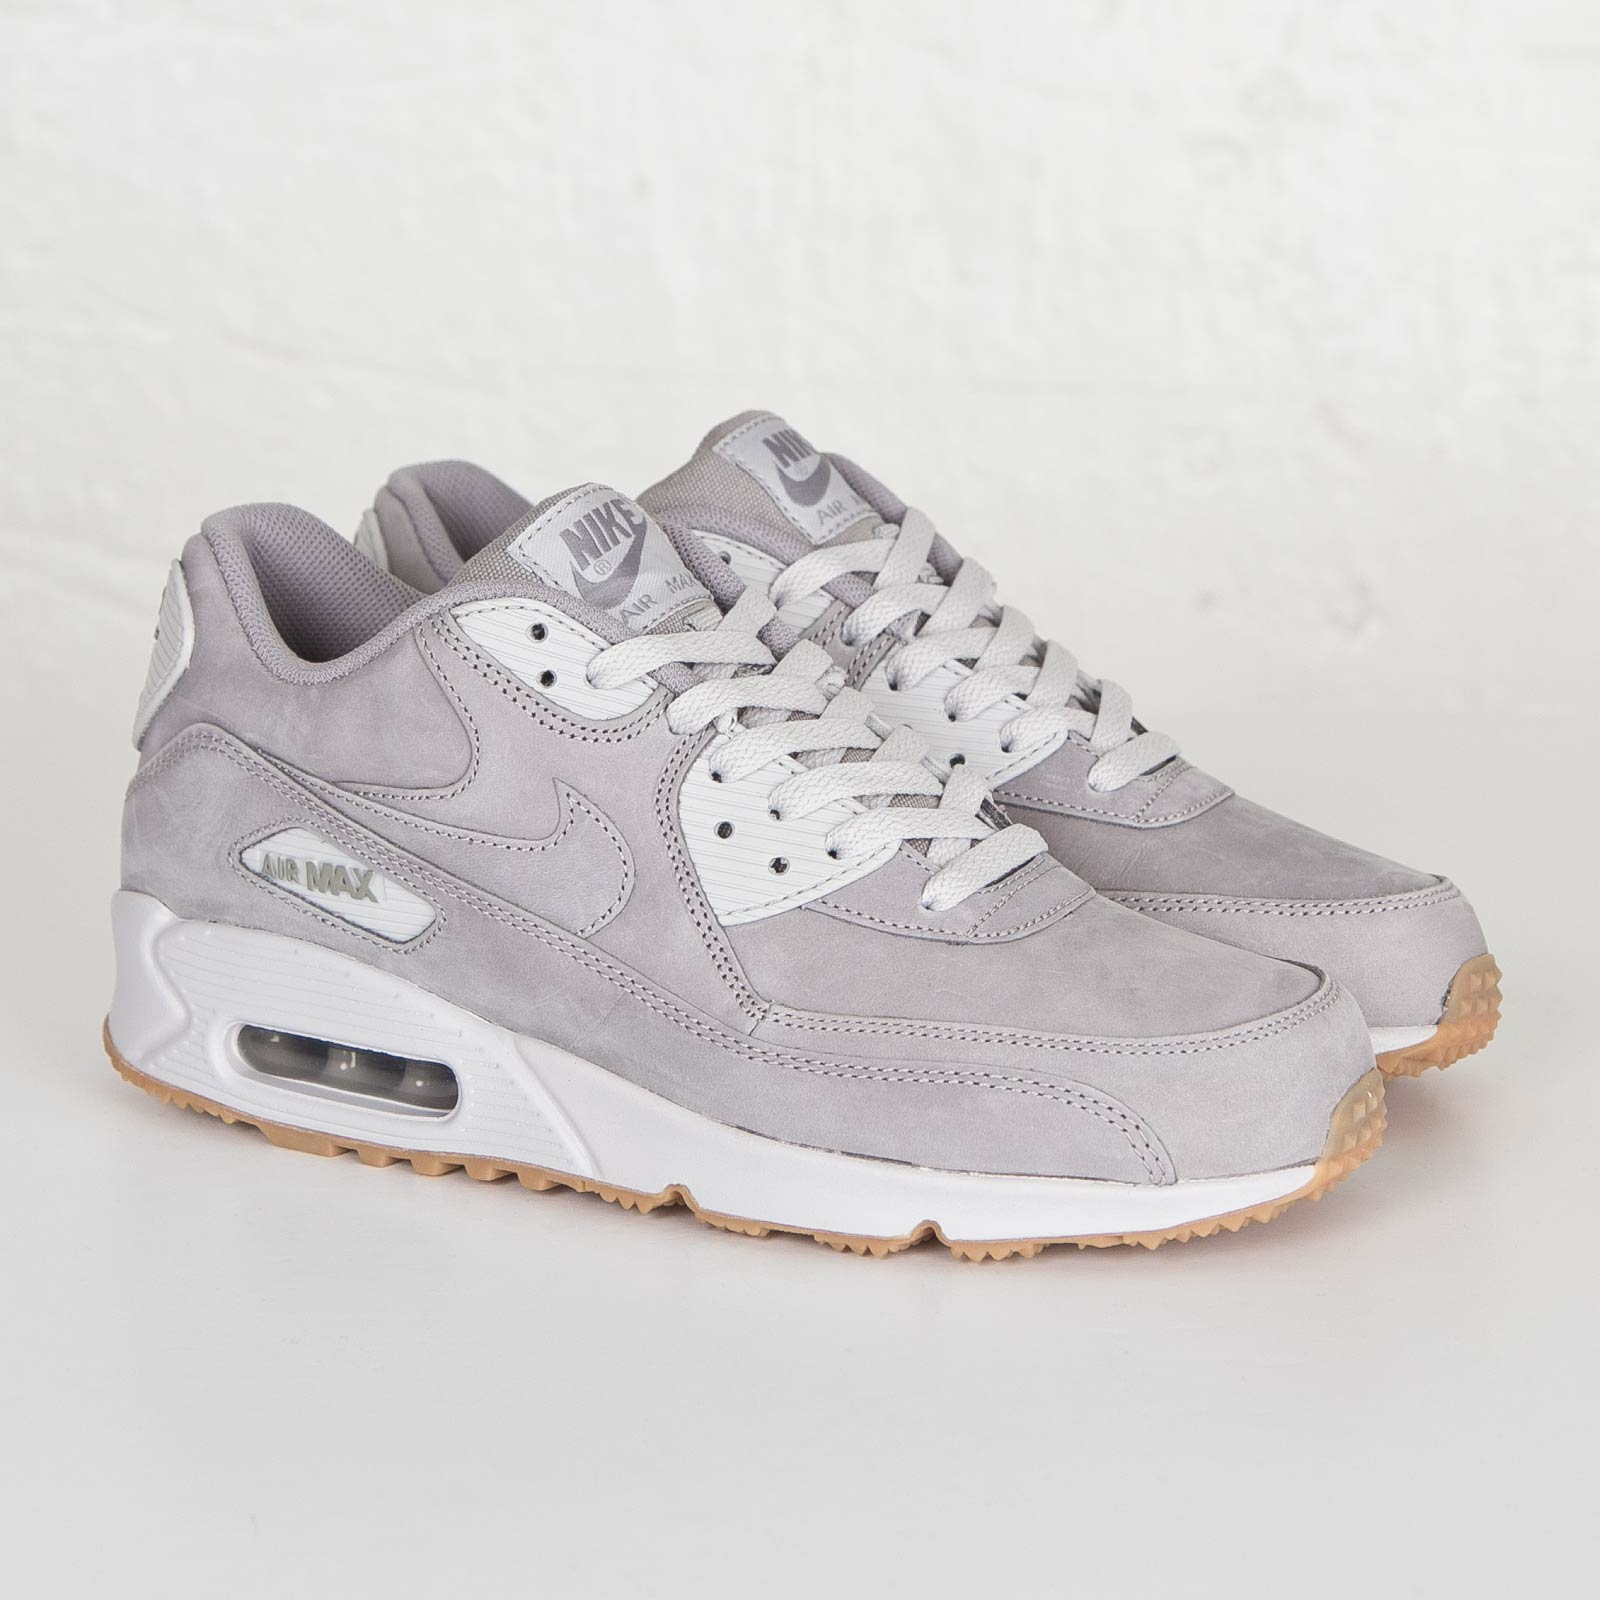 8ac8610424dd9 Nike Air Max 90 Winter Premium - 683282-005 - Sneakersnstuff ...